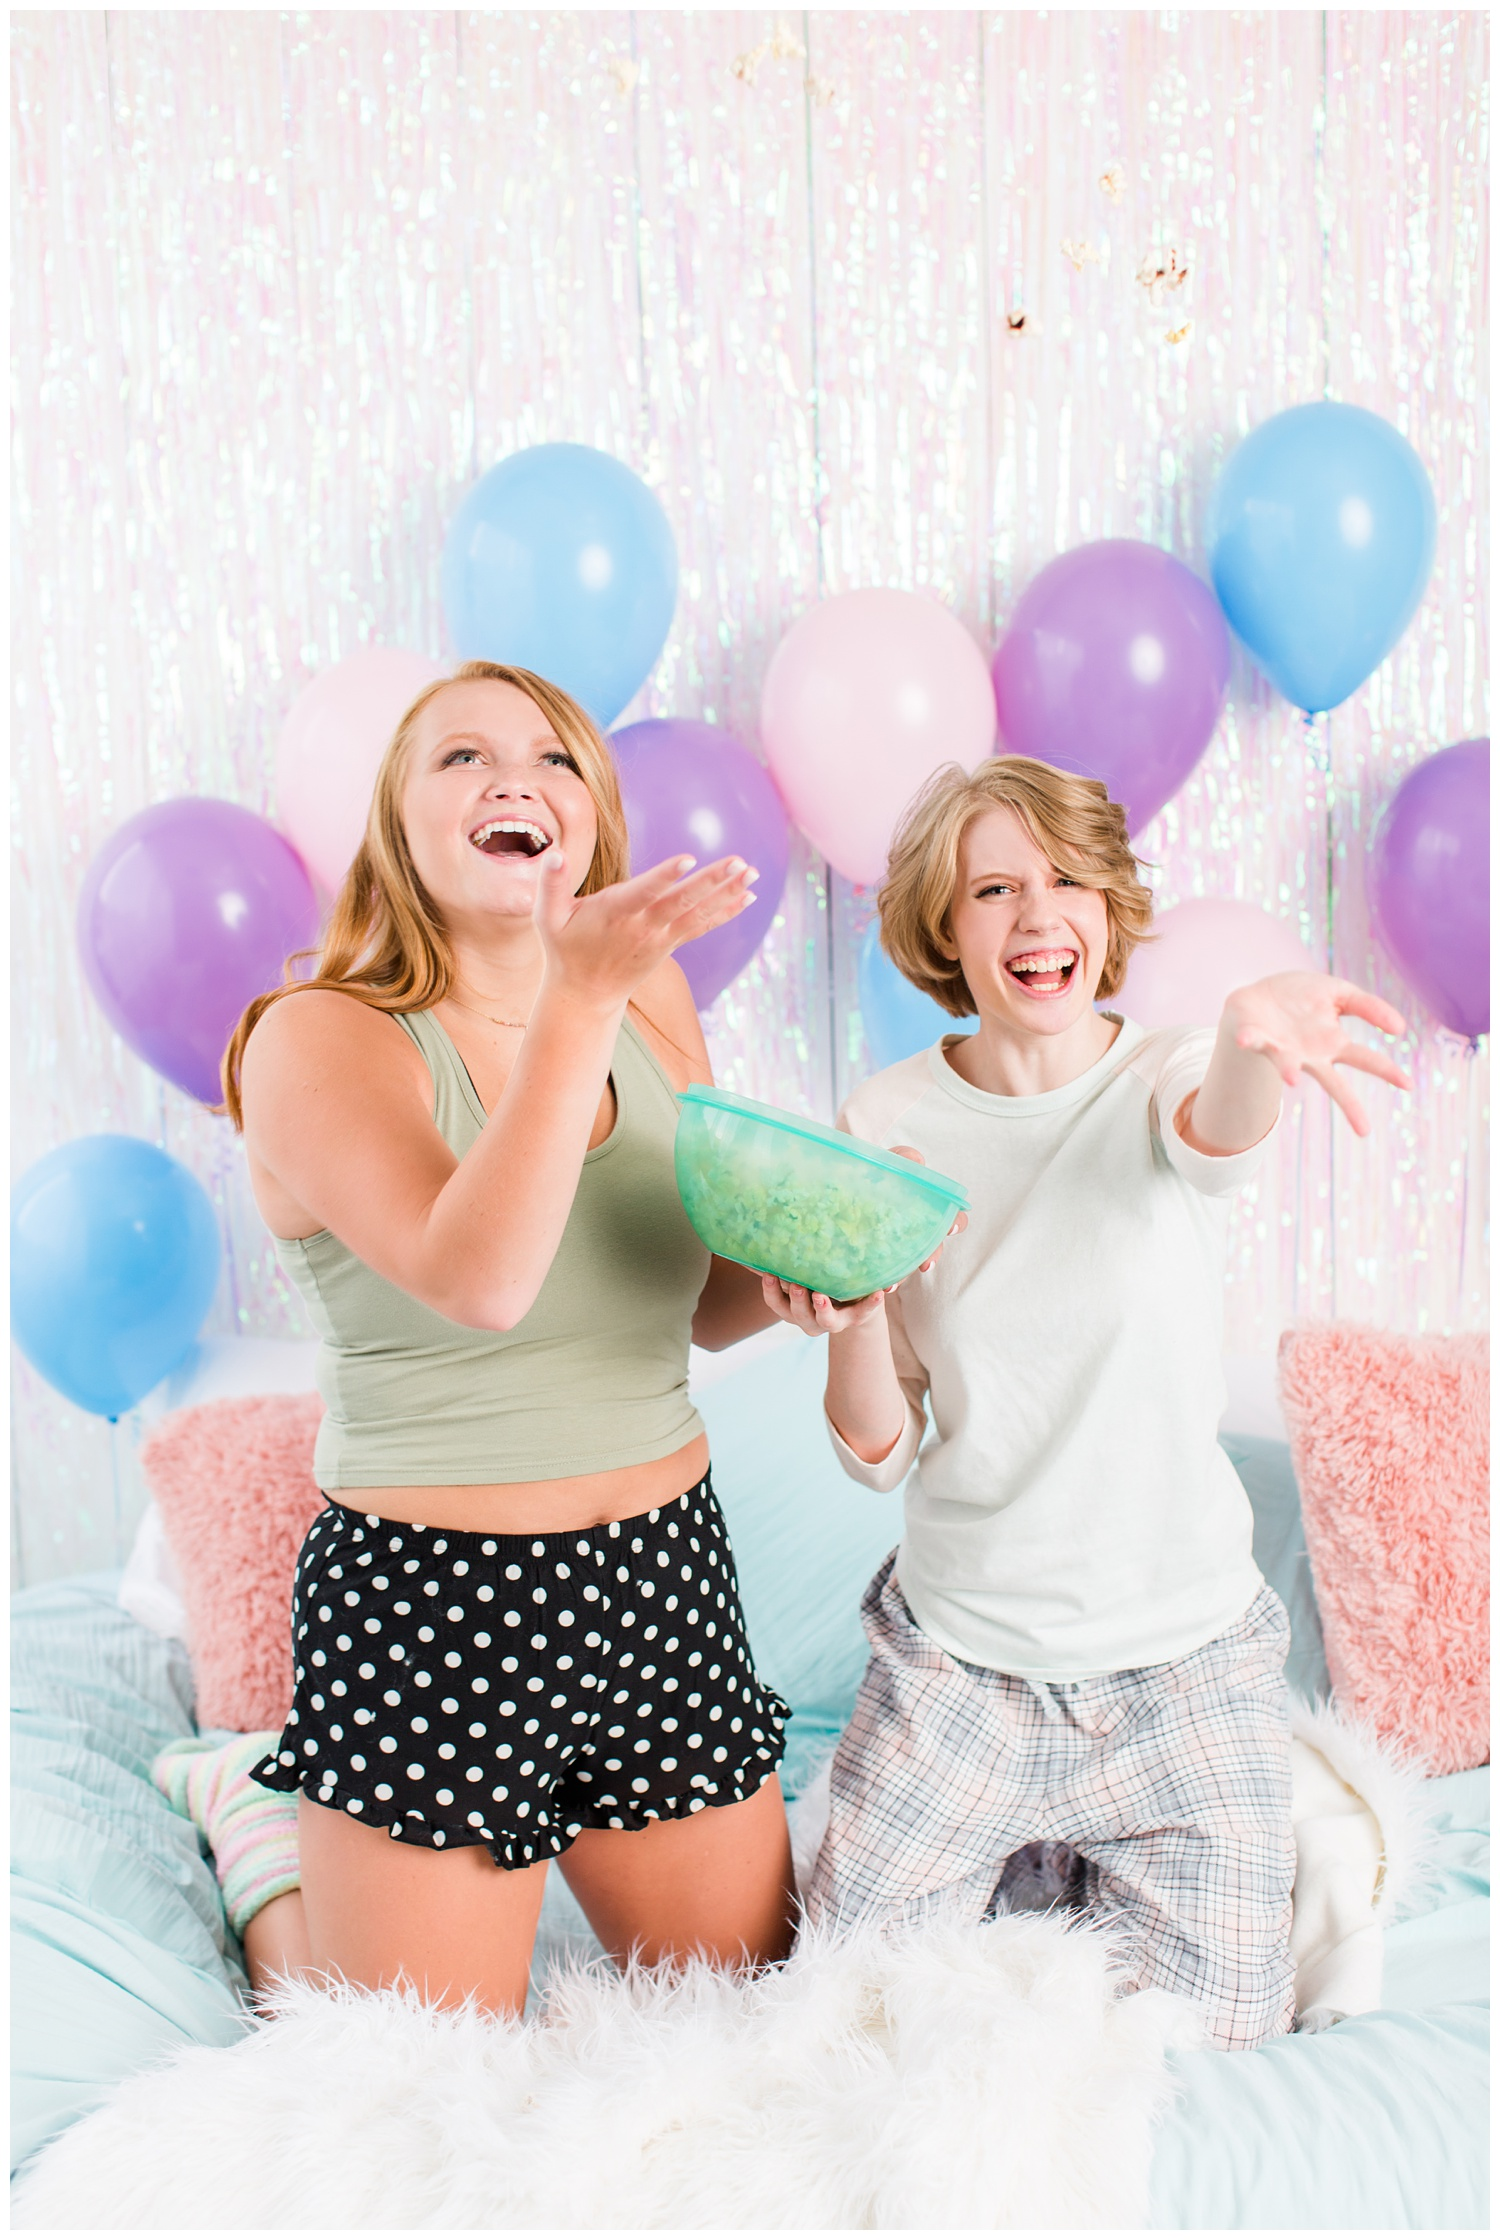 Senior girls throwing popcorn and laughing during a senior sleepover-styled photoshoot with iridescent streamers and balloons. | CB Studio